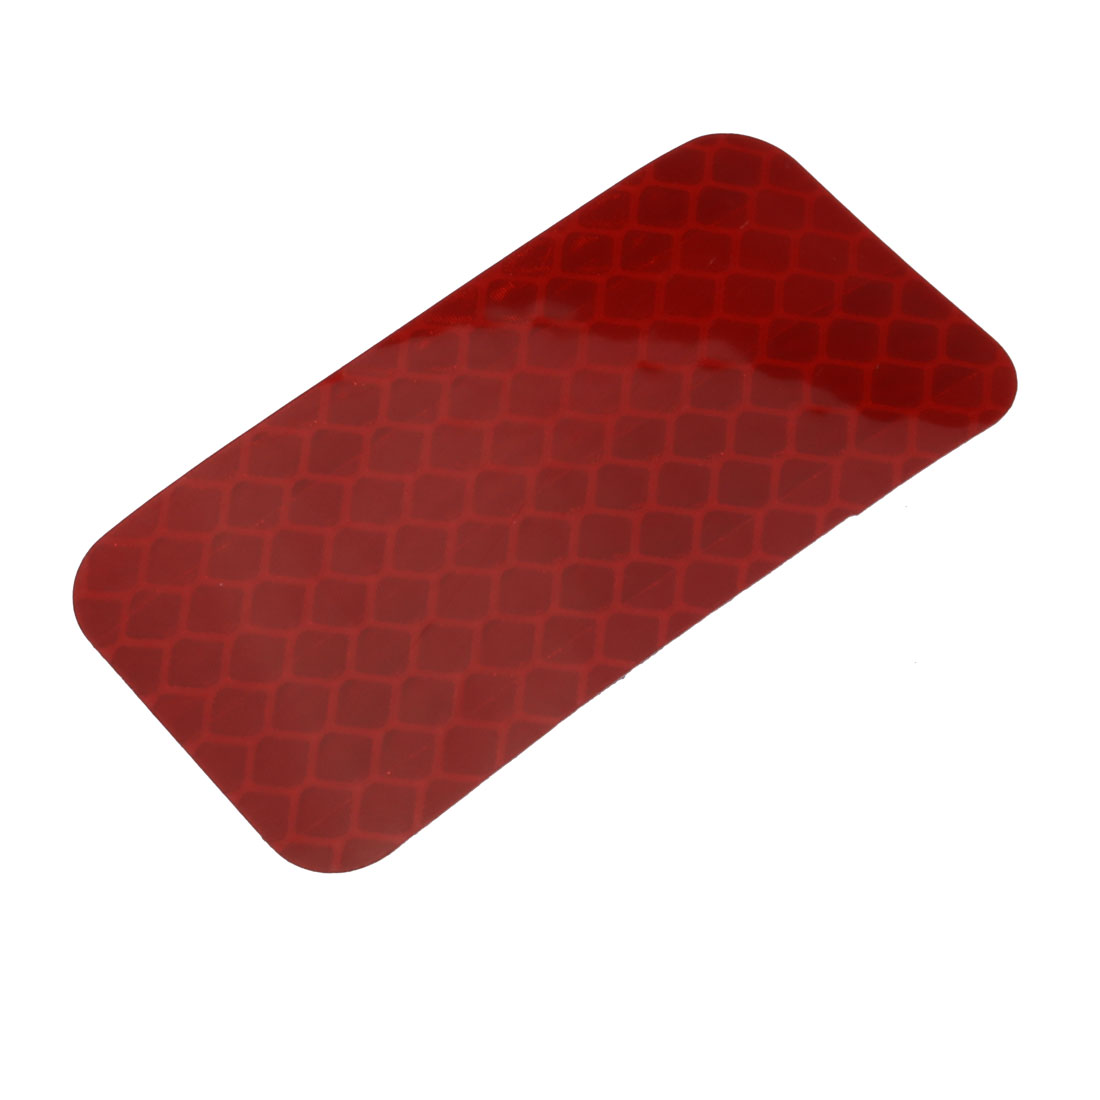 Honeycomb Reflective Warning Tape Film Sticker Red 30mm x 60mm